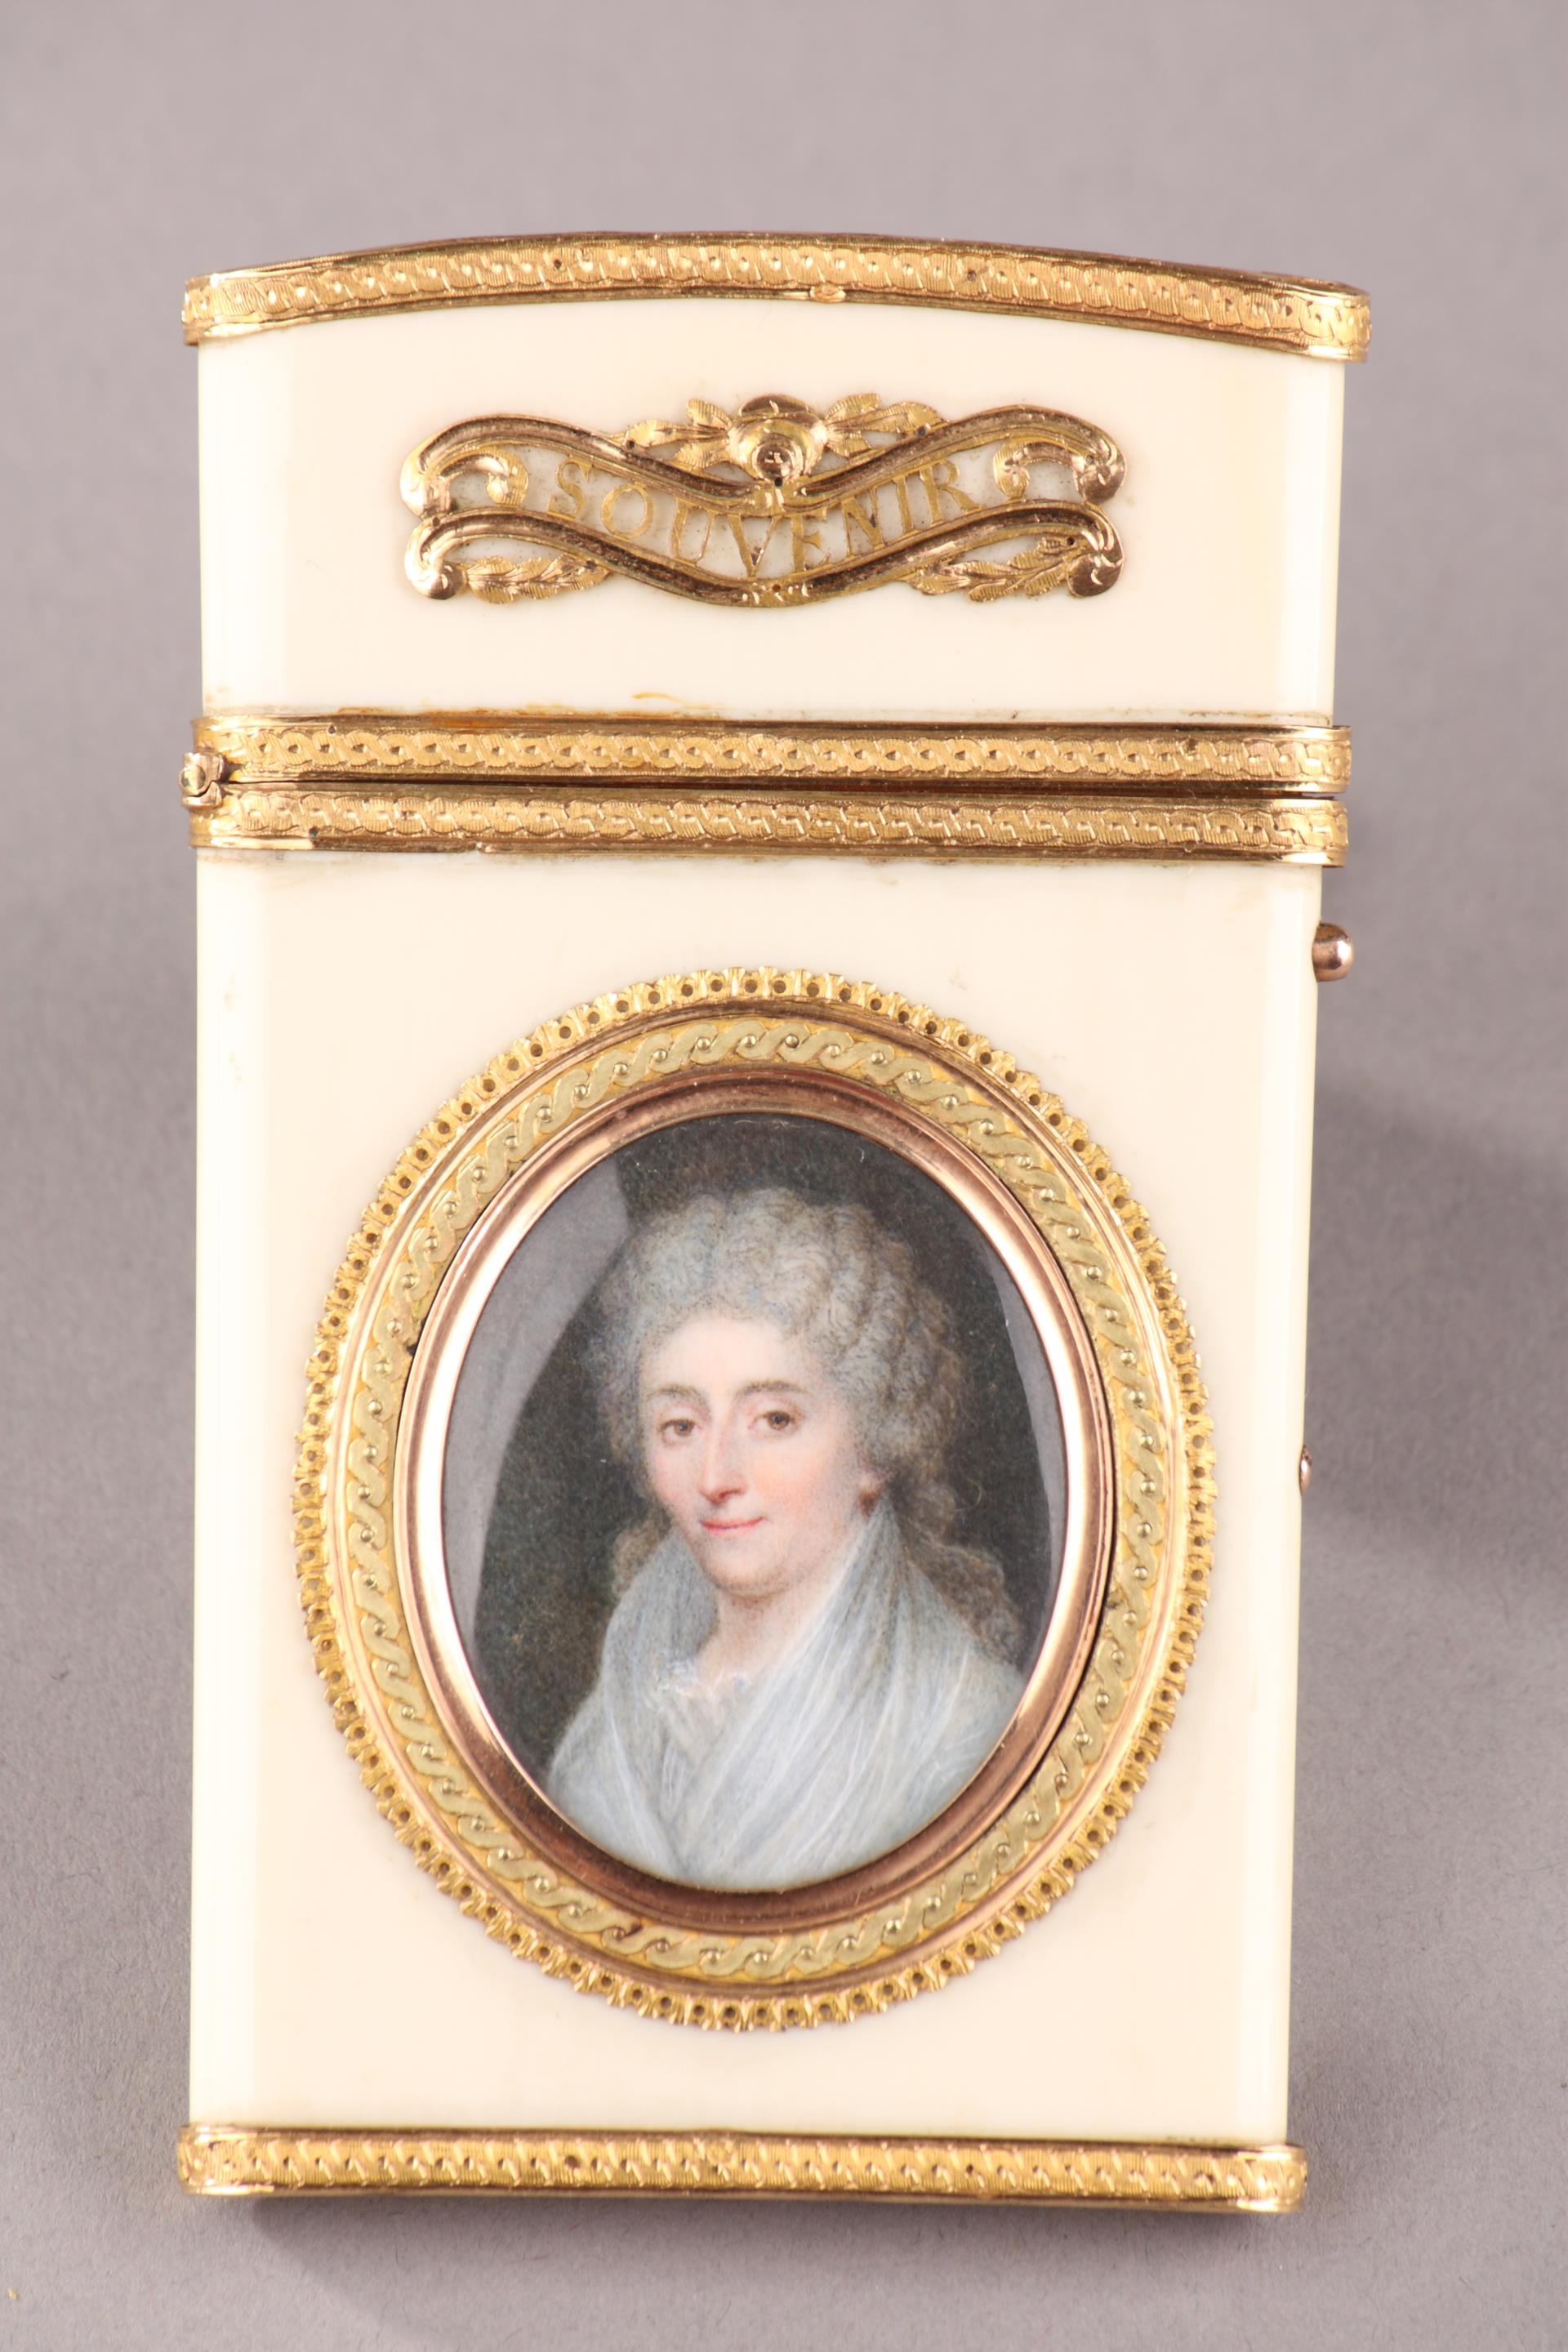 GOLD AND IVORY CASE. <br/>